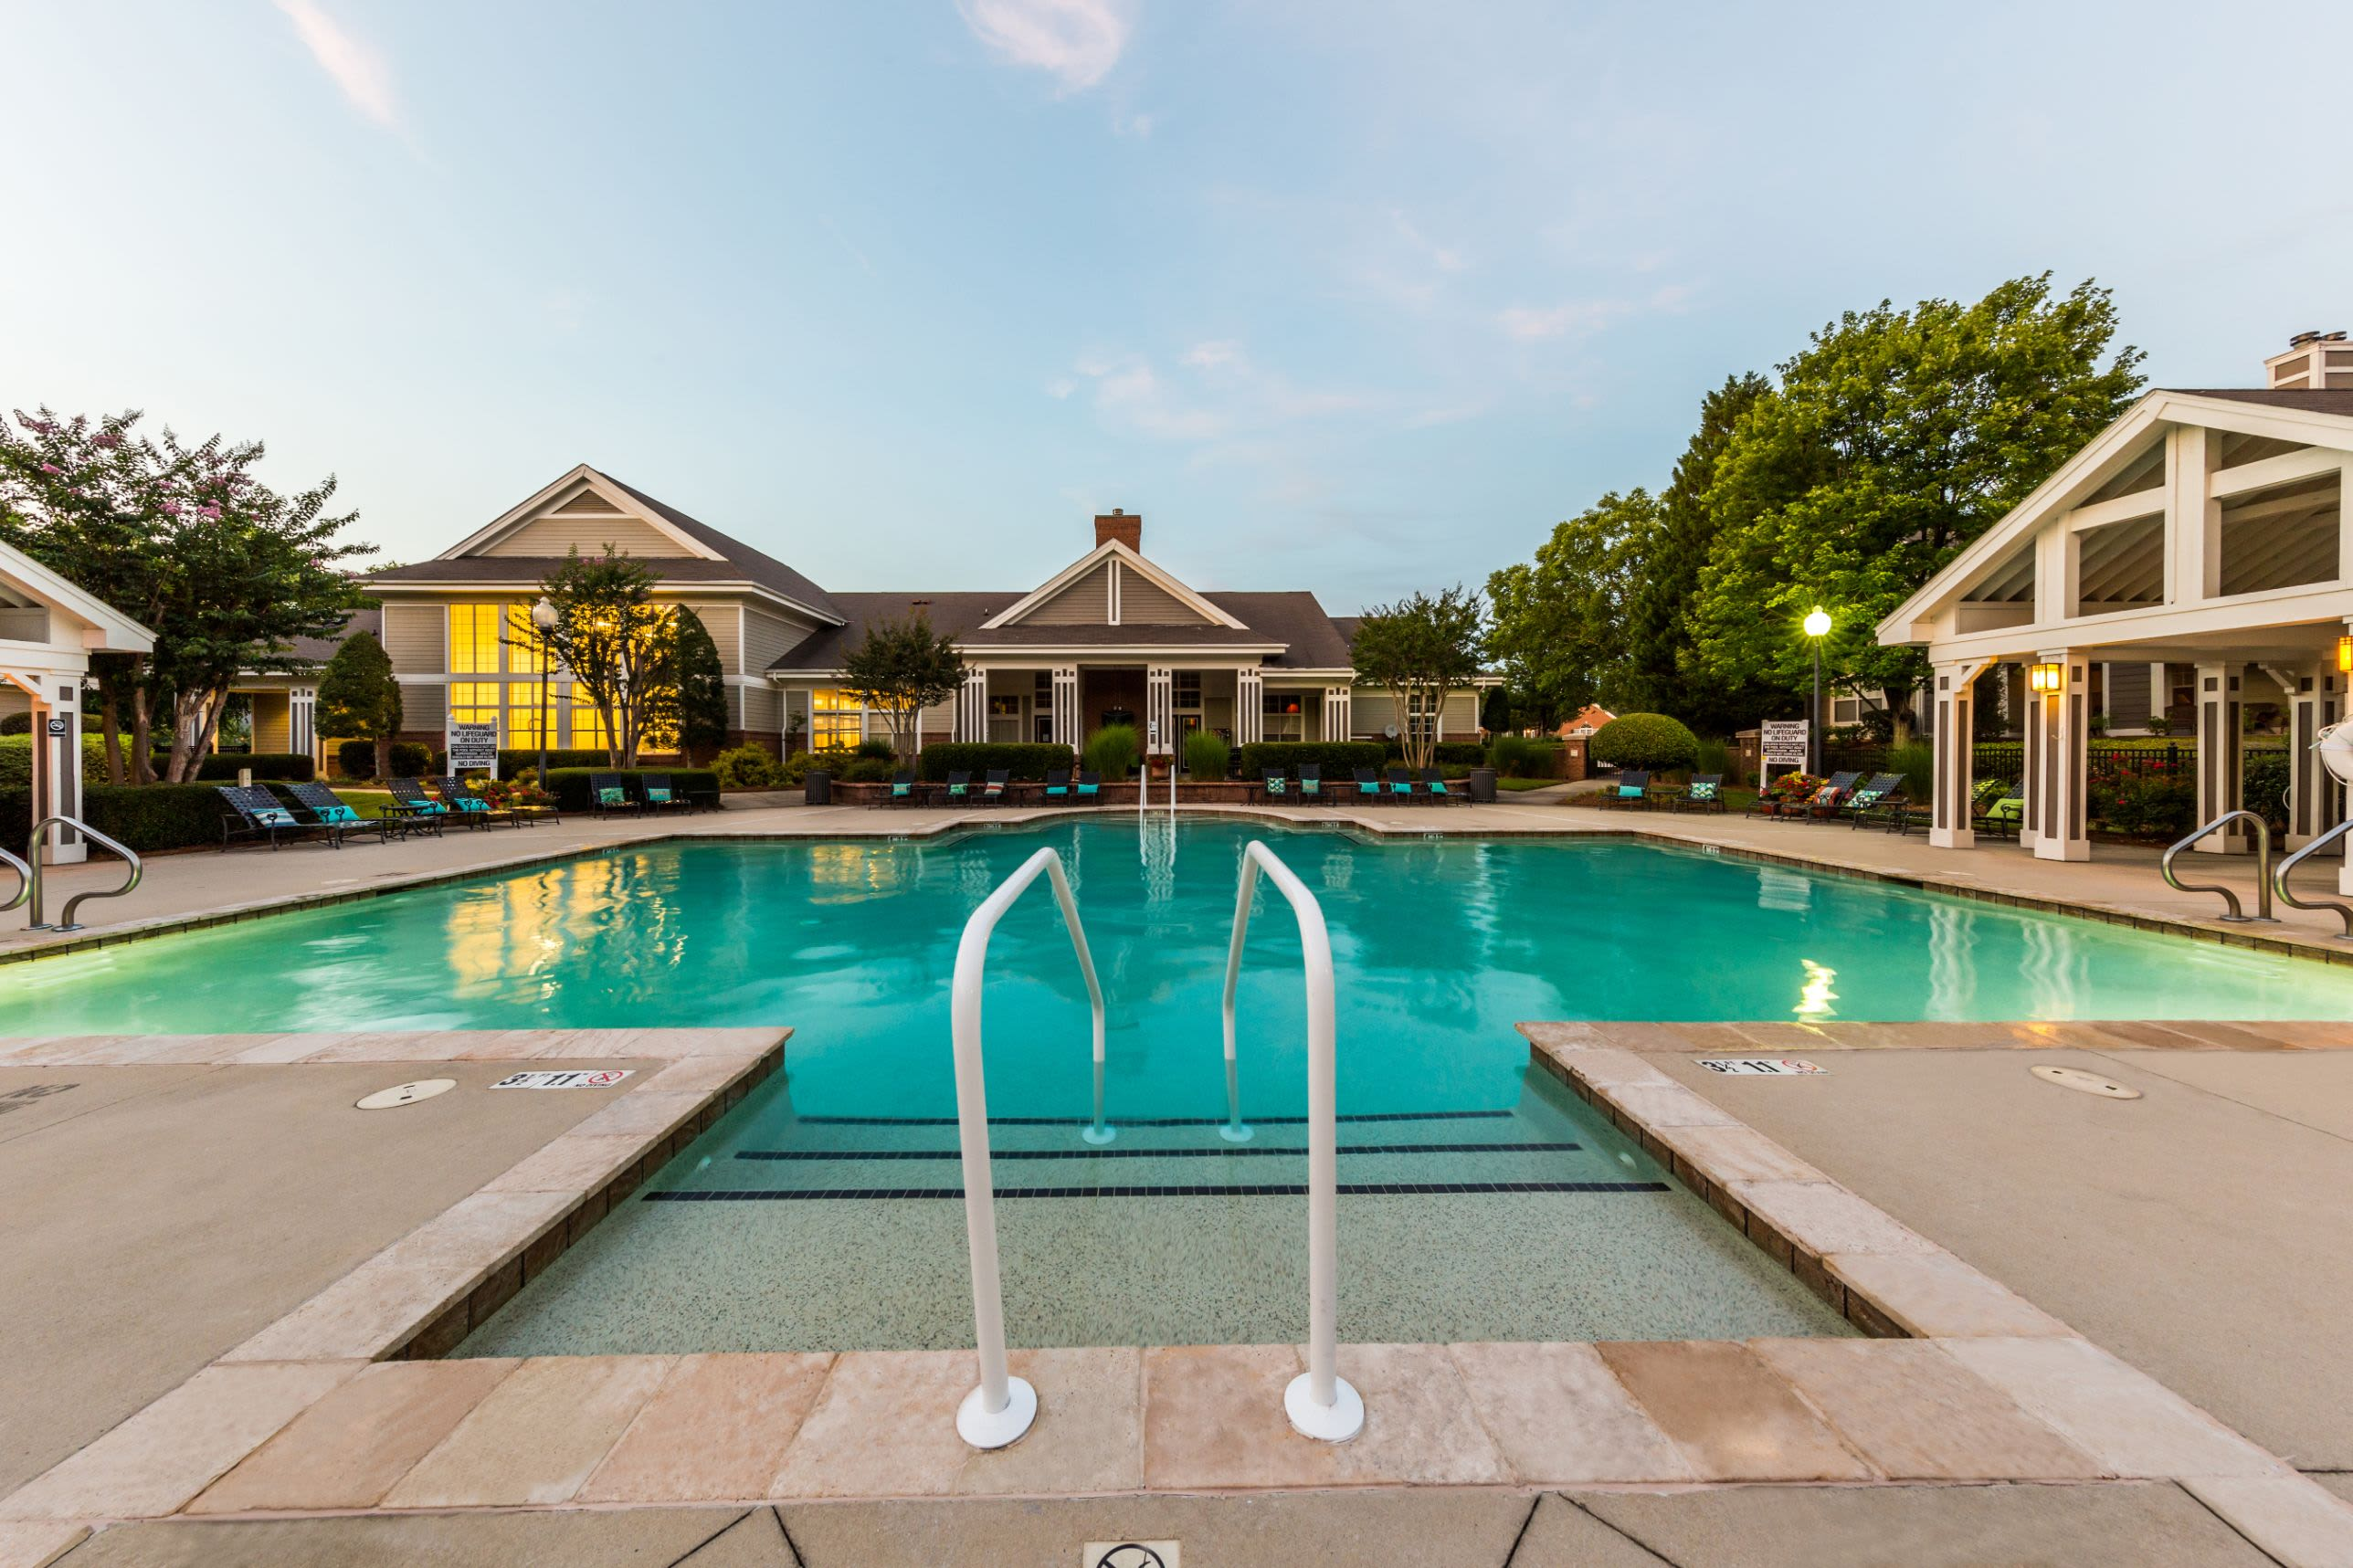 Swimming pool with hand rail at The Preserve at Ballantyne Commons in Charlotte, North Carolina